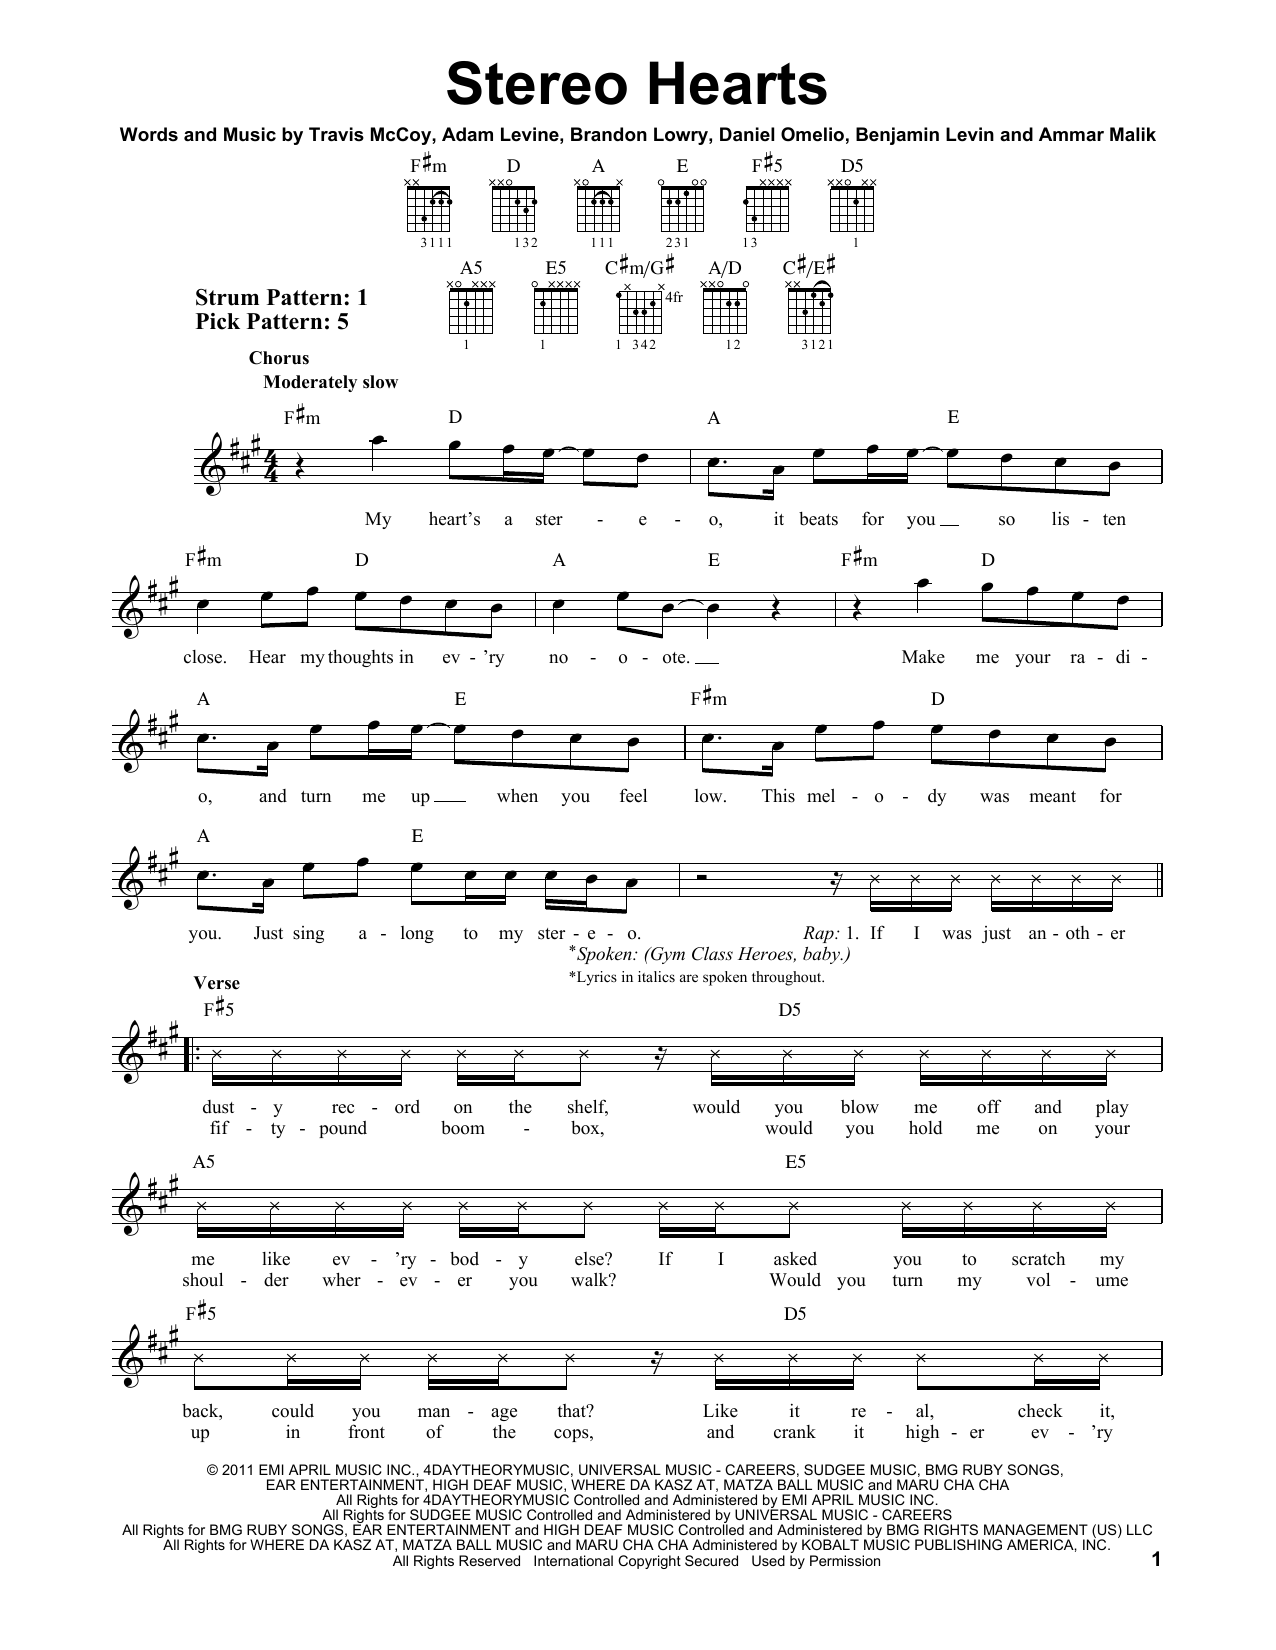 Gym Class Heroes Stereo Hearts (feat. Adam Levine) sheet music notes and chords. Download Printable PDF.